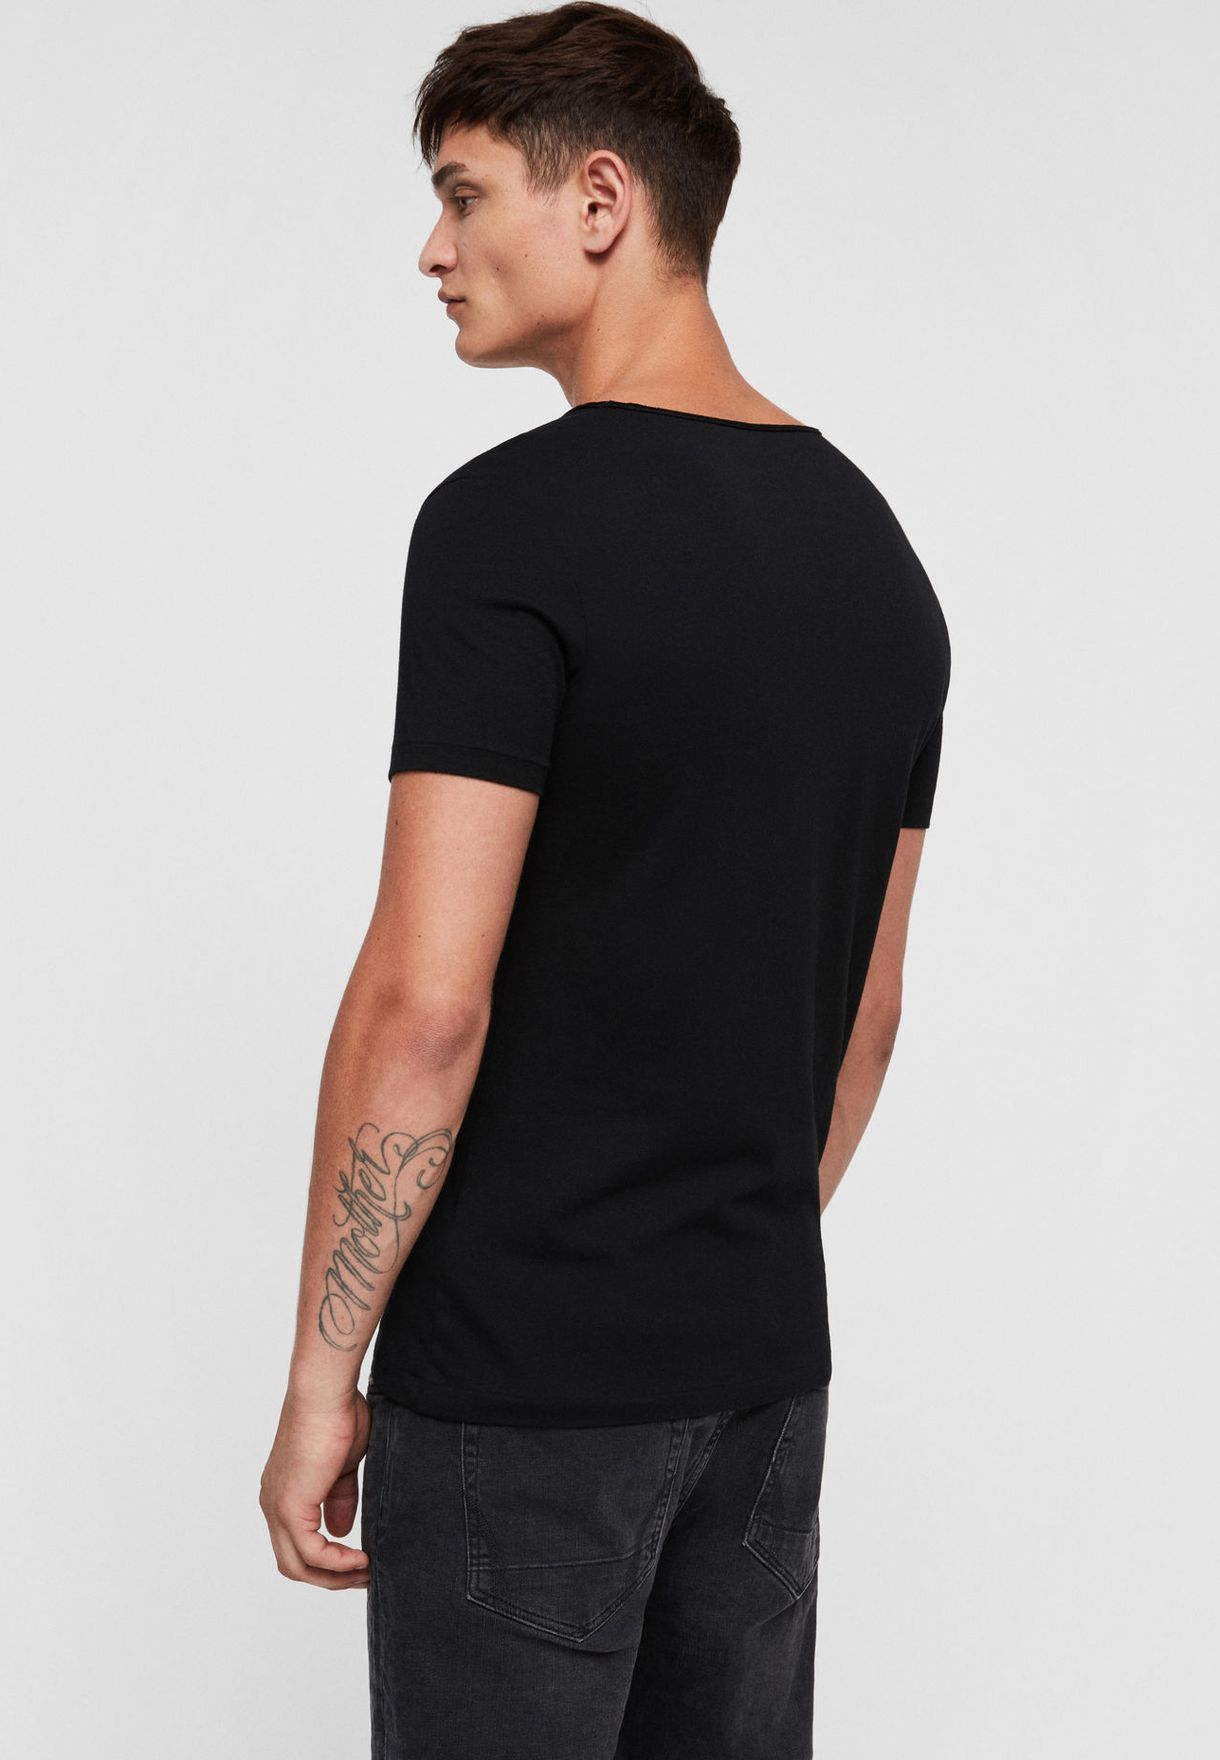 Tonic Scoop V-Neck T-Shirt